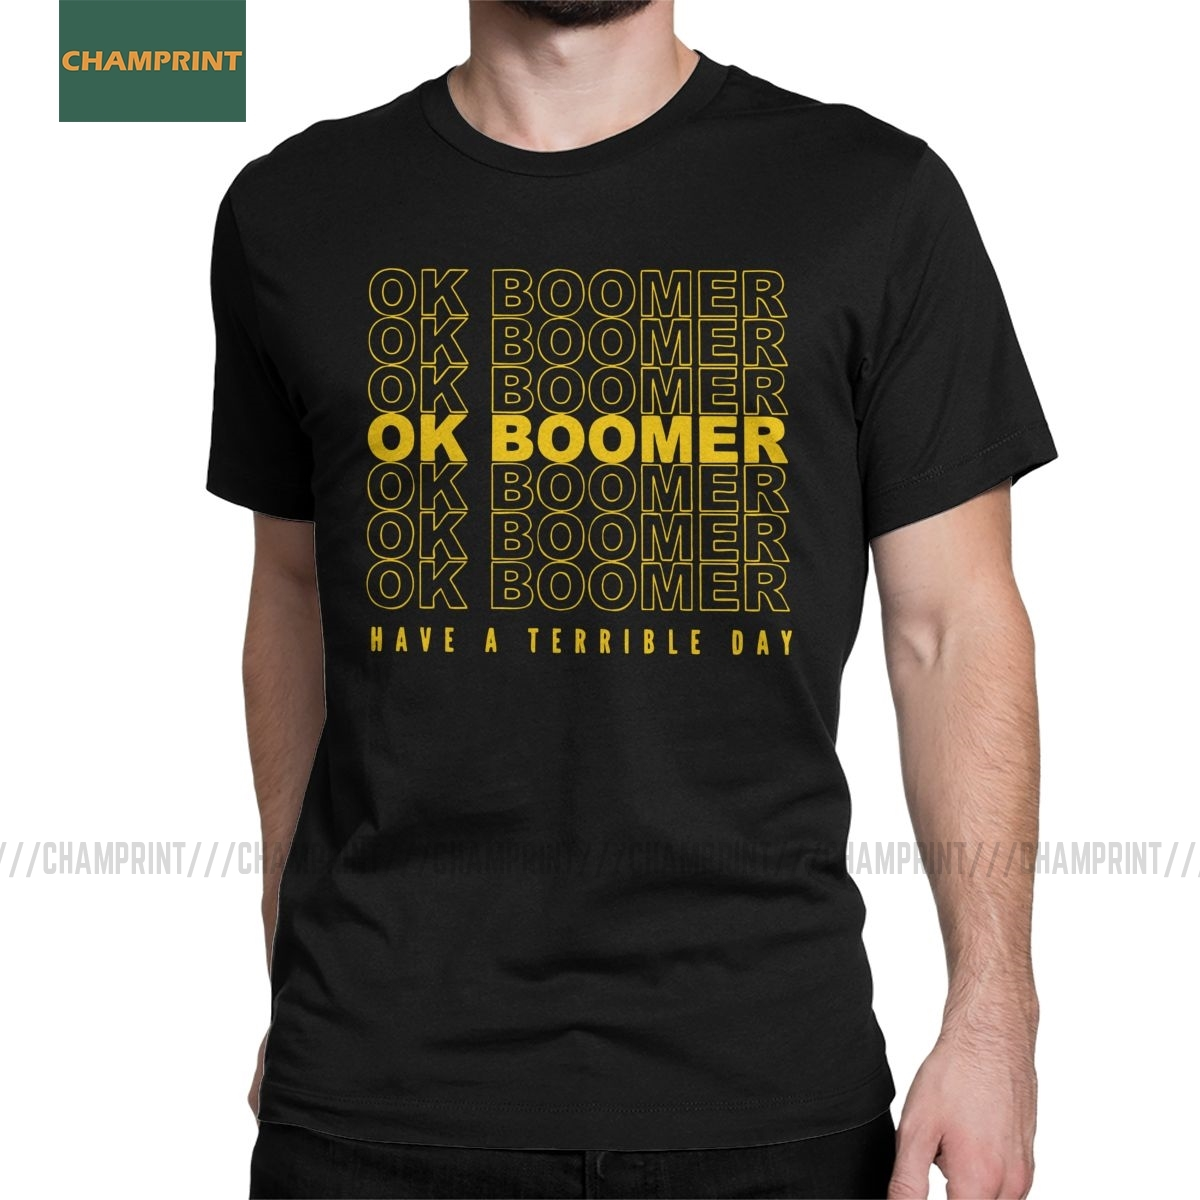 Men's OK Boomer T Shirt Quote Generation Z Okay Meme 100% Cotton Tops Leisure Short Sleeve Tee Shirt Printed T-Shirts image